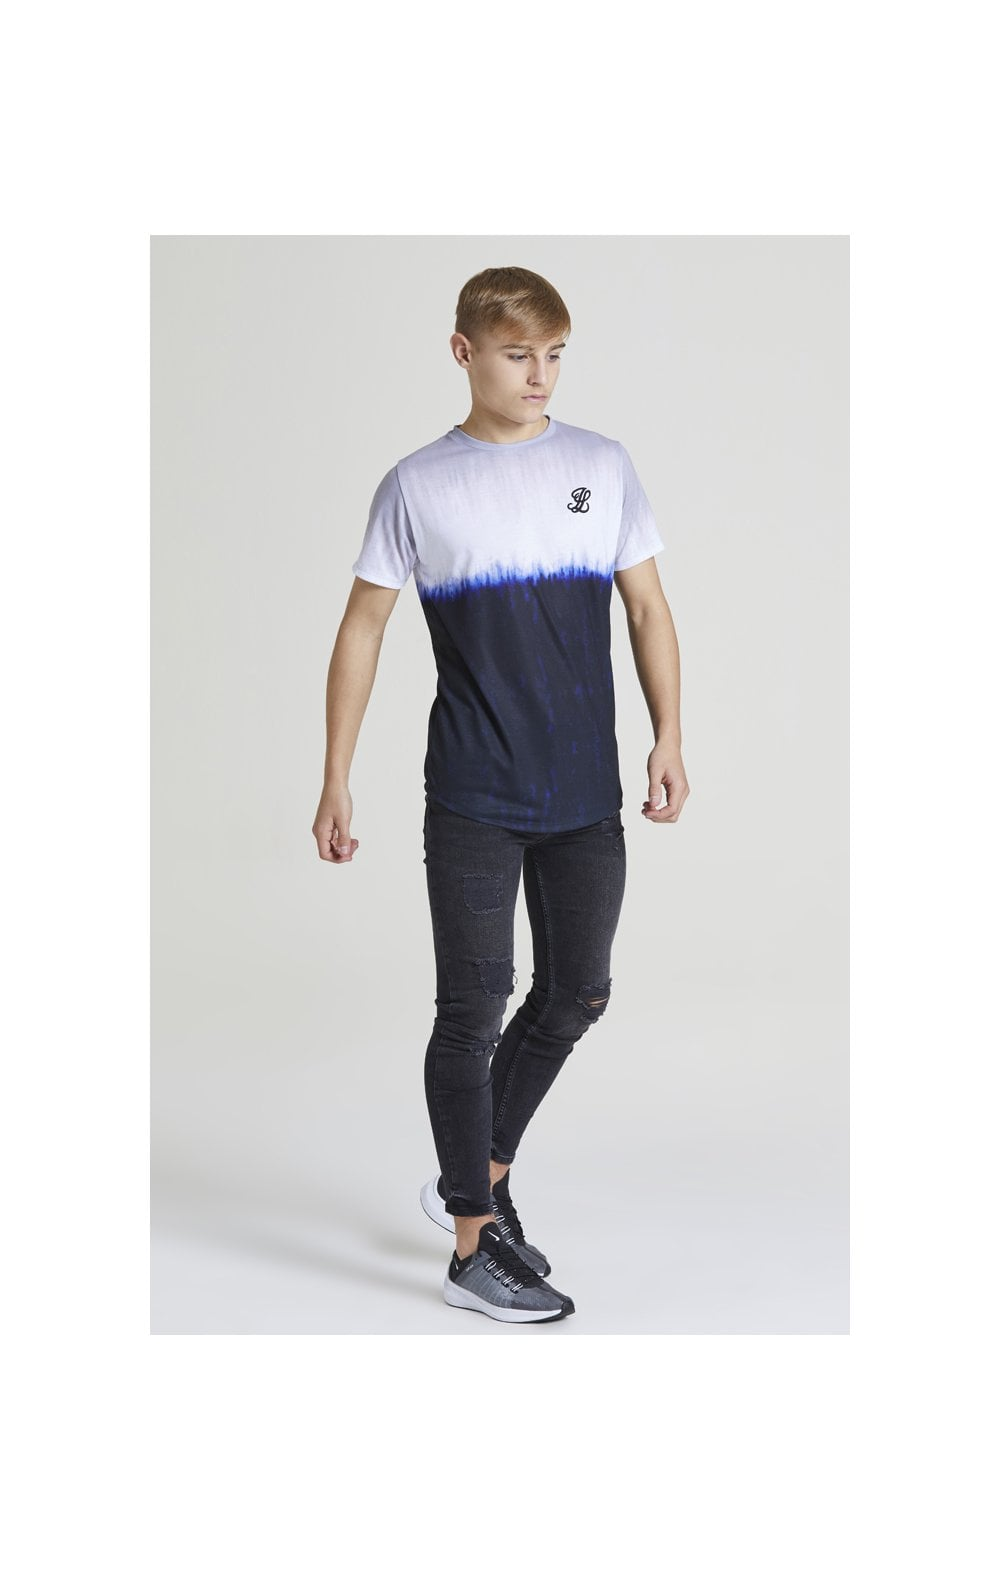 Illusive London Tie Dye Fade Tee - Grey, Navy & white (3)